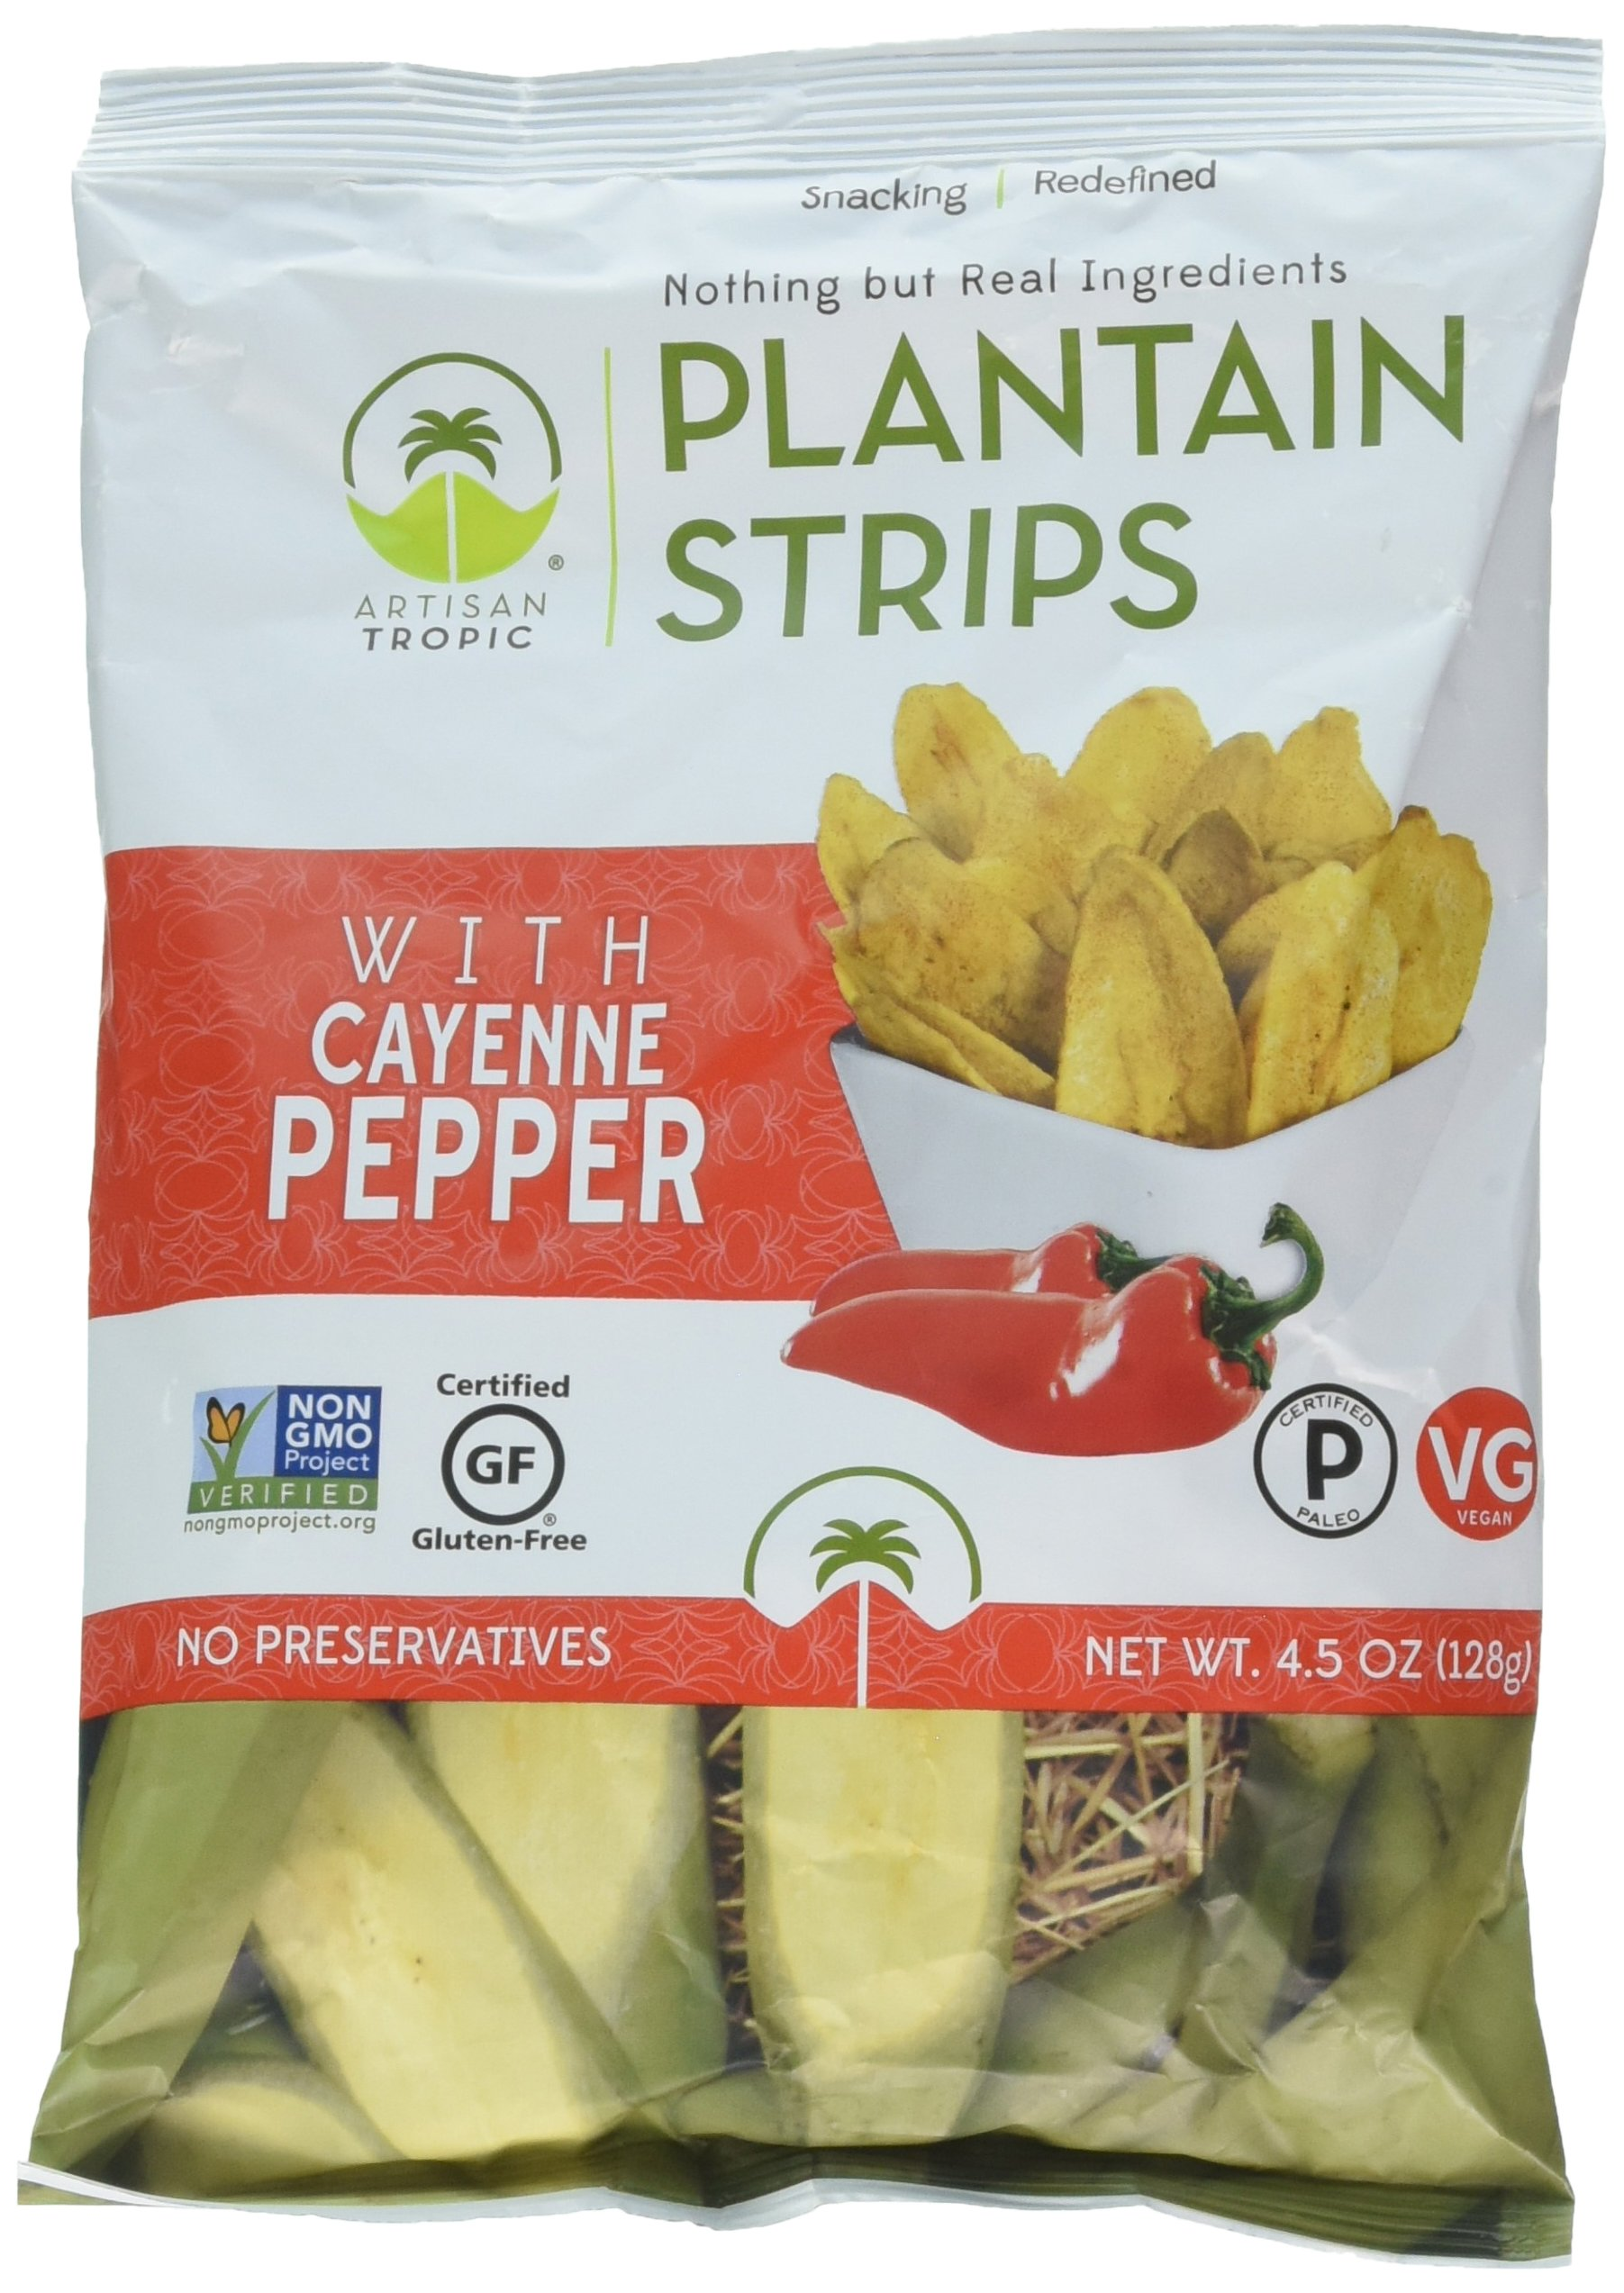 Artisan Tropic Plantain Strips with Cayenne Pepper, Cooked in Sustainable Palm Oil, Paleo Certified, 4.5 Oz, (2 Pack)